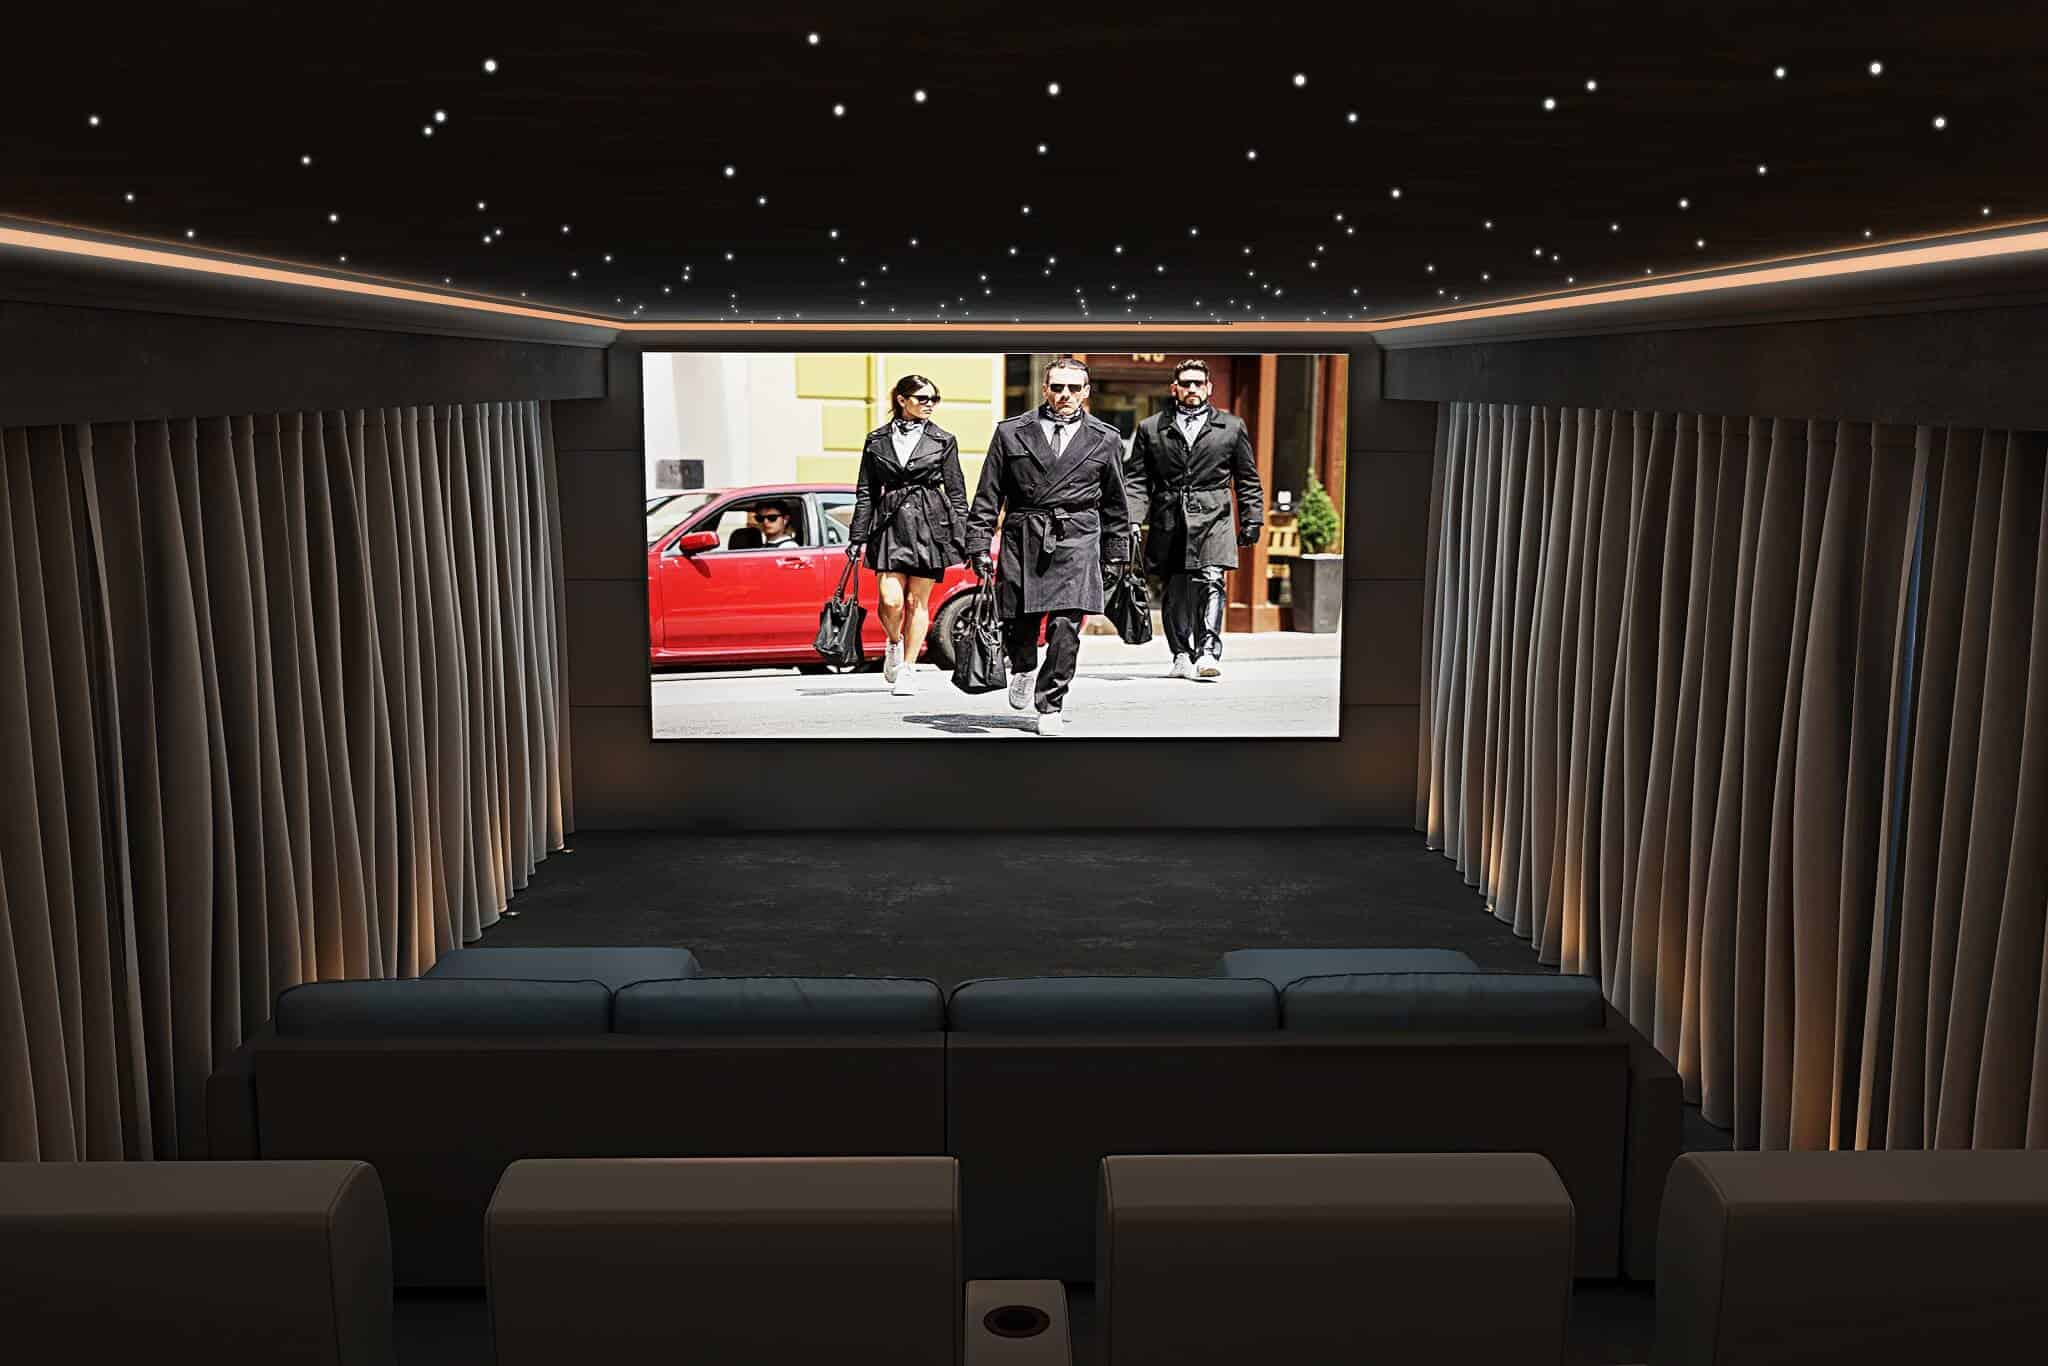 A Home Cinema installed in a Garden Room